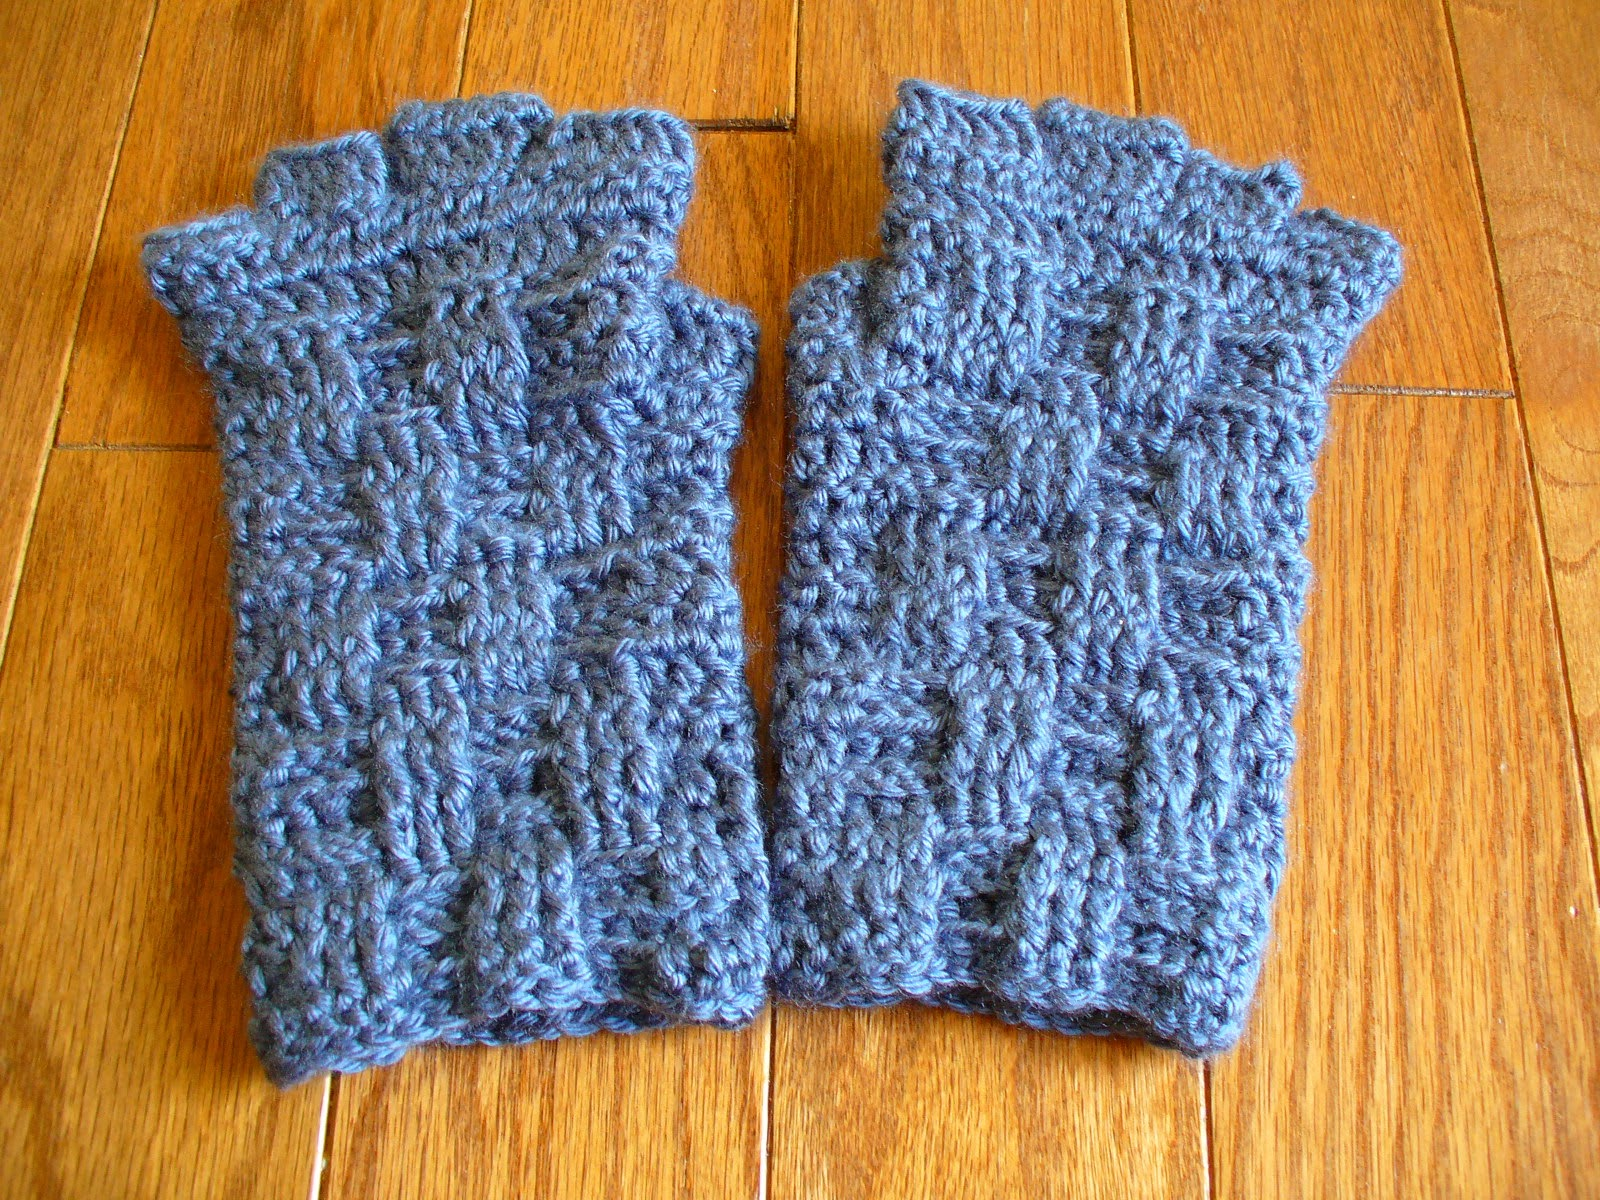 Sanity by Stitches: Basket Weave Fingerless Gloves - Pattern